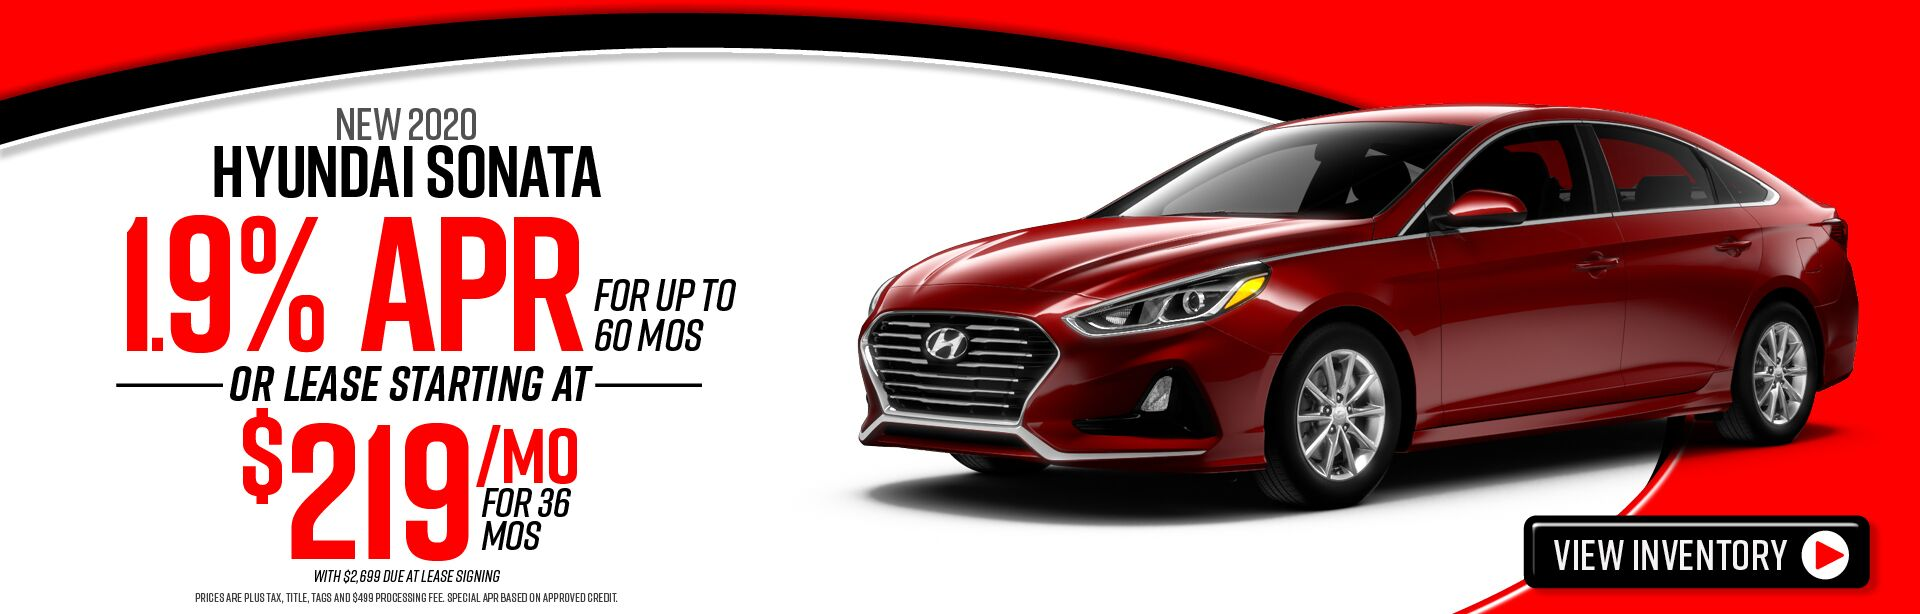 New 2020 Hyundai Sonata for sale in Winchester, VA